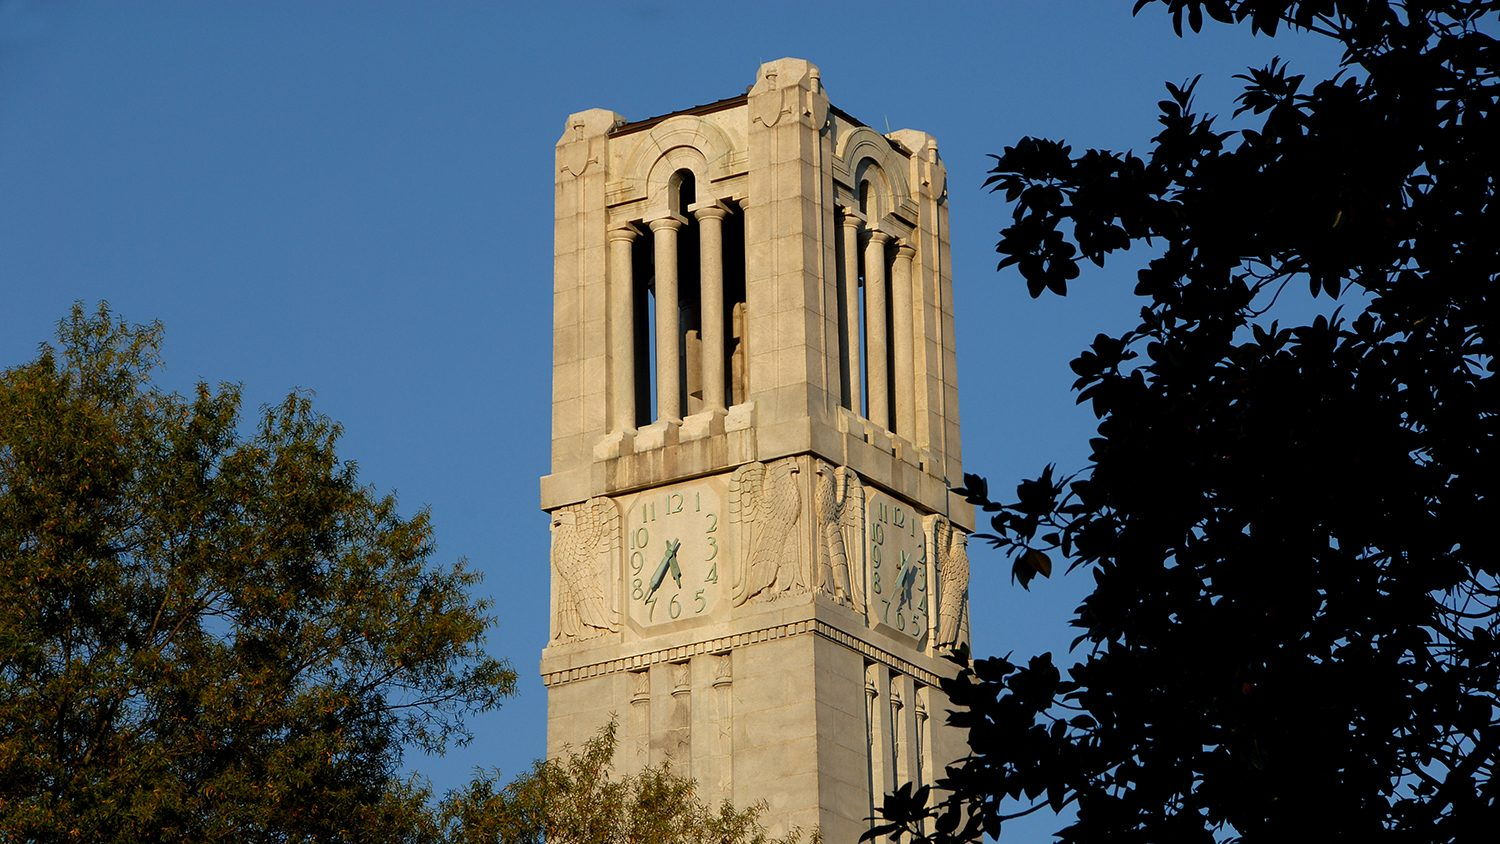 Sun sets on the Belltower under a crisp blue fall sky.